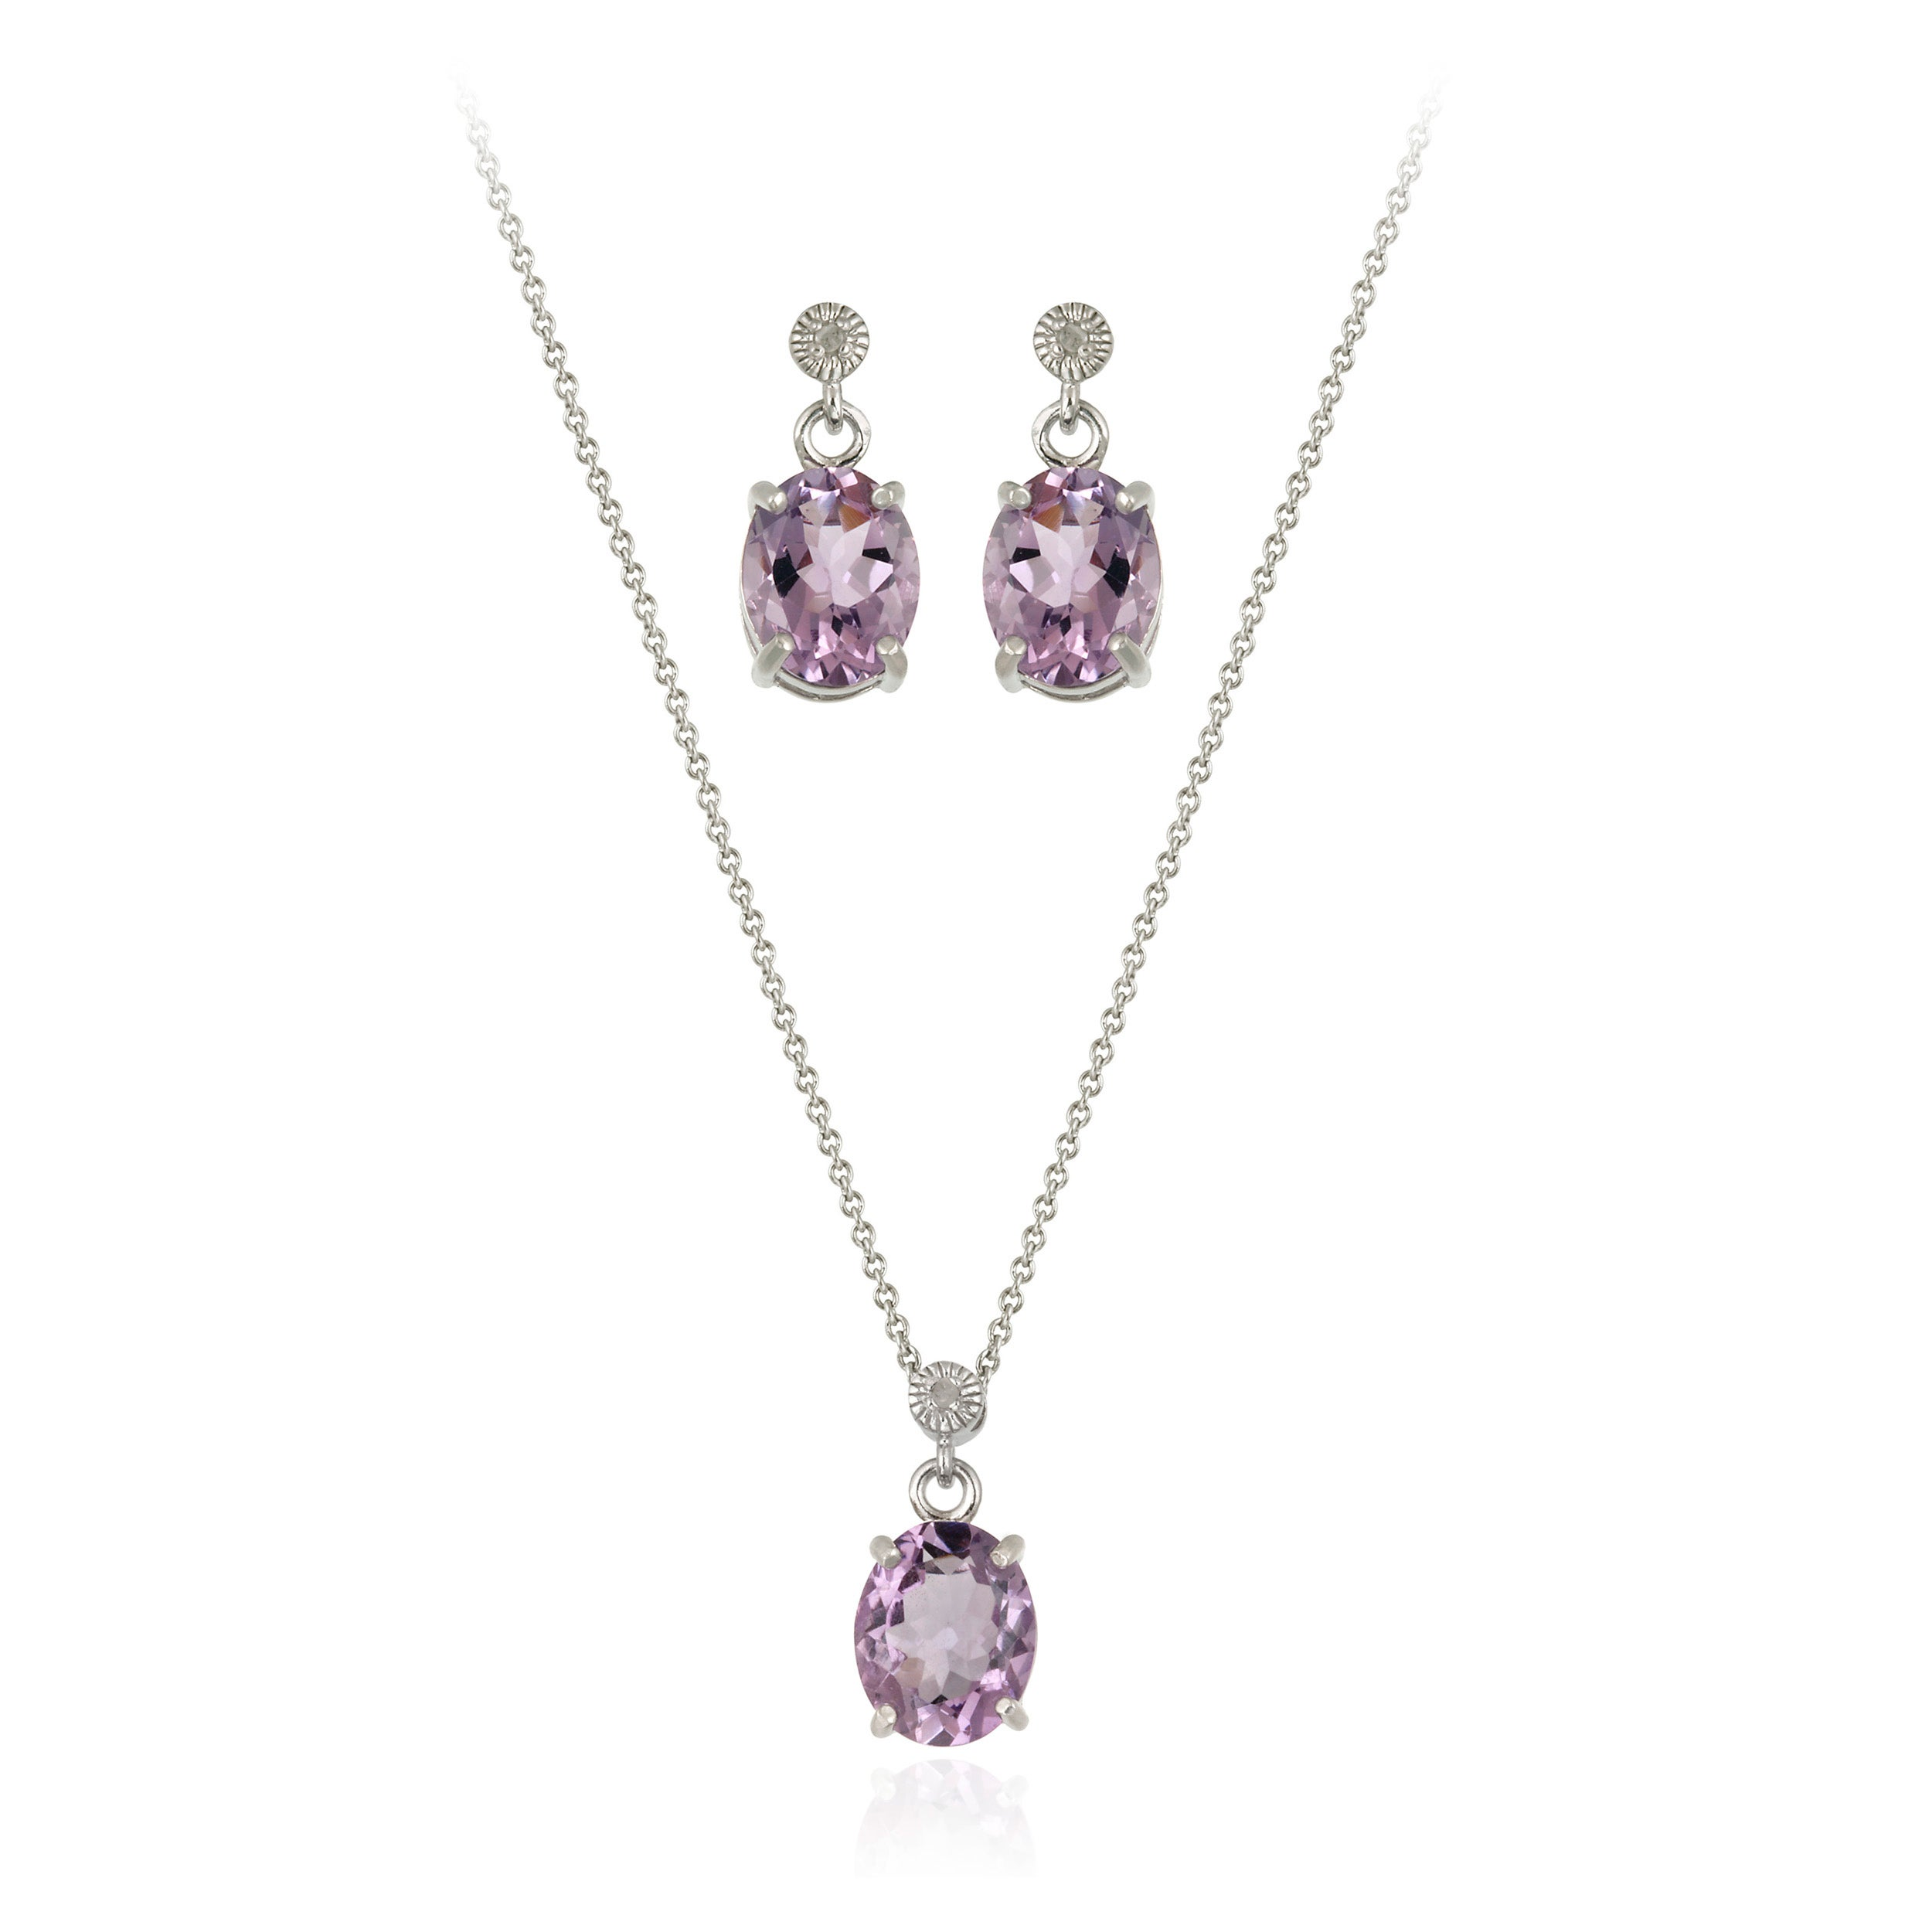 Glitzy Rocks Sterling Silver 7 8 Ctw Amethyst Necklace And Earrings Set On Free Shipping Orders Over 45 4719223